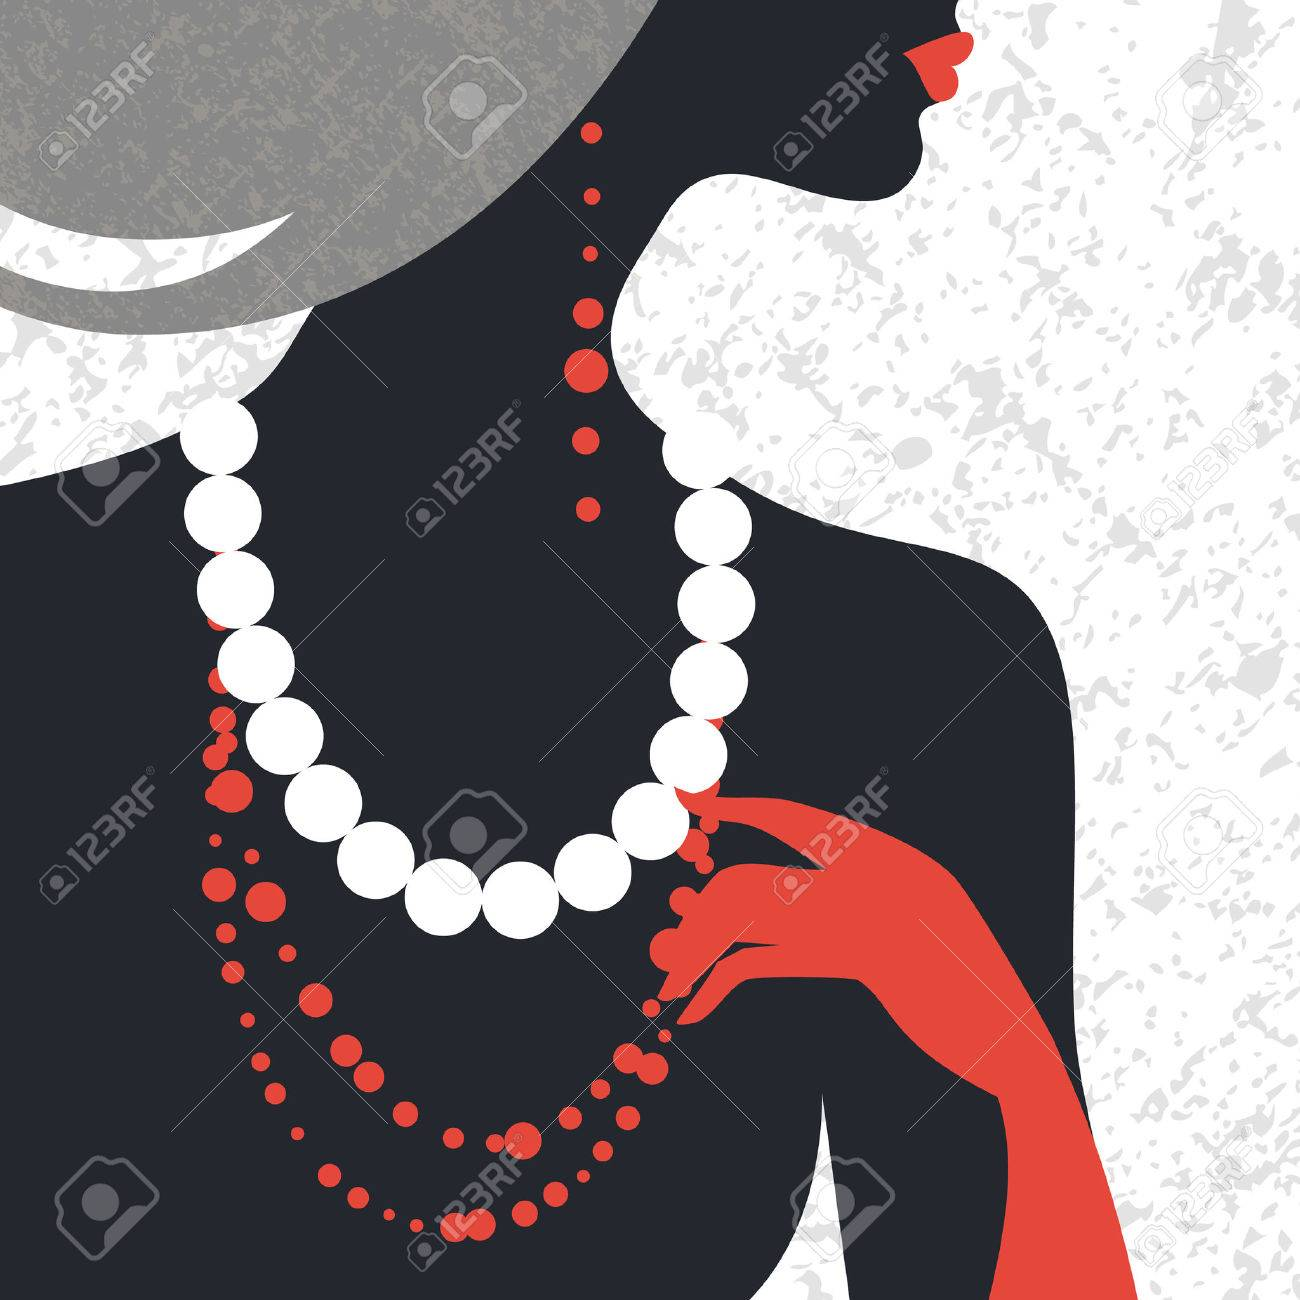 27,310 Fashion Jewelry Stock Vector Illustration And Royalty Free ...